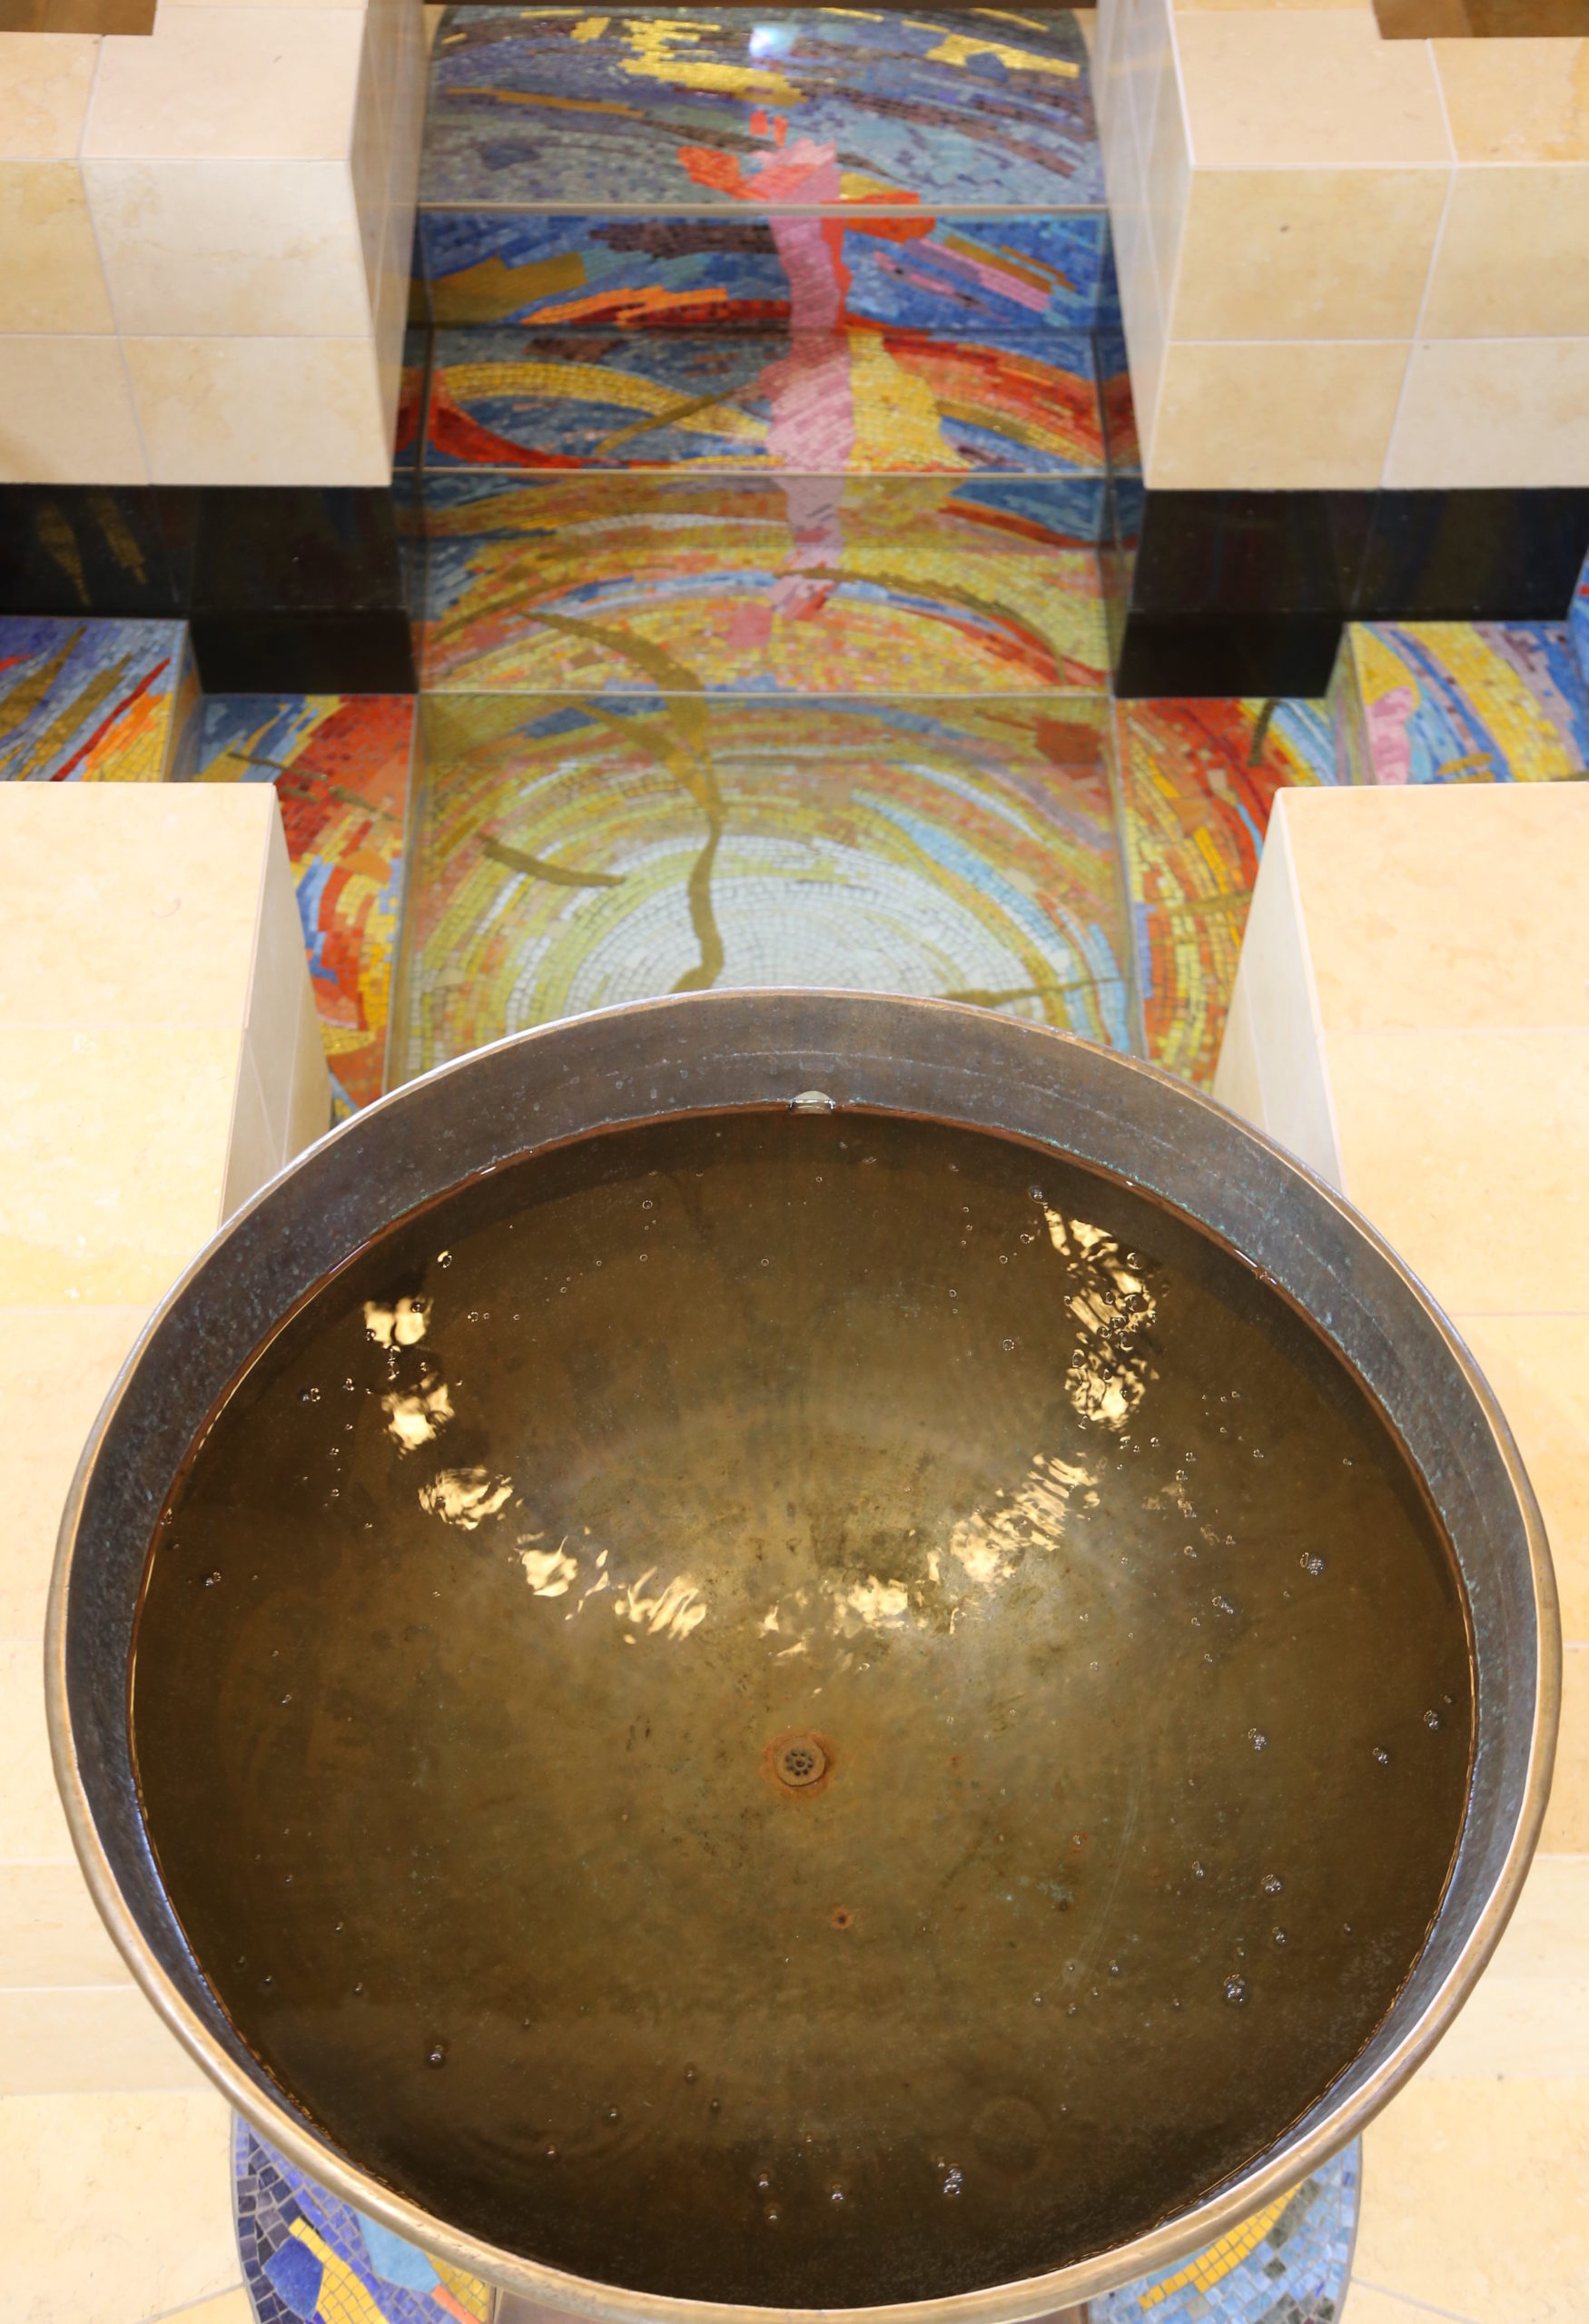 Genesis Mosaic Font. Bronze font bowl and pedestal by Wanner Sculpture Studios.